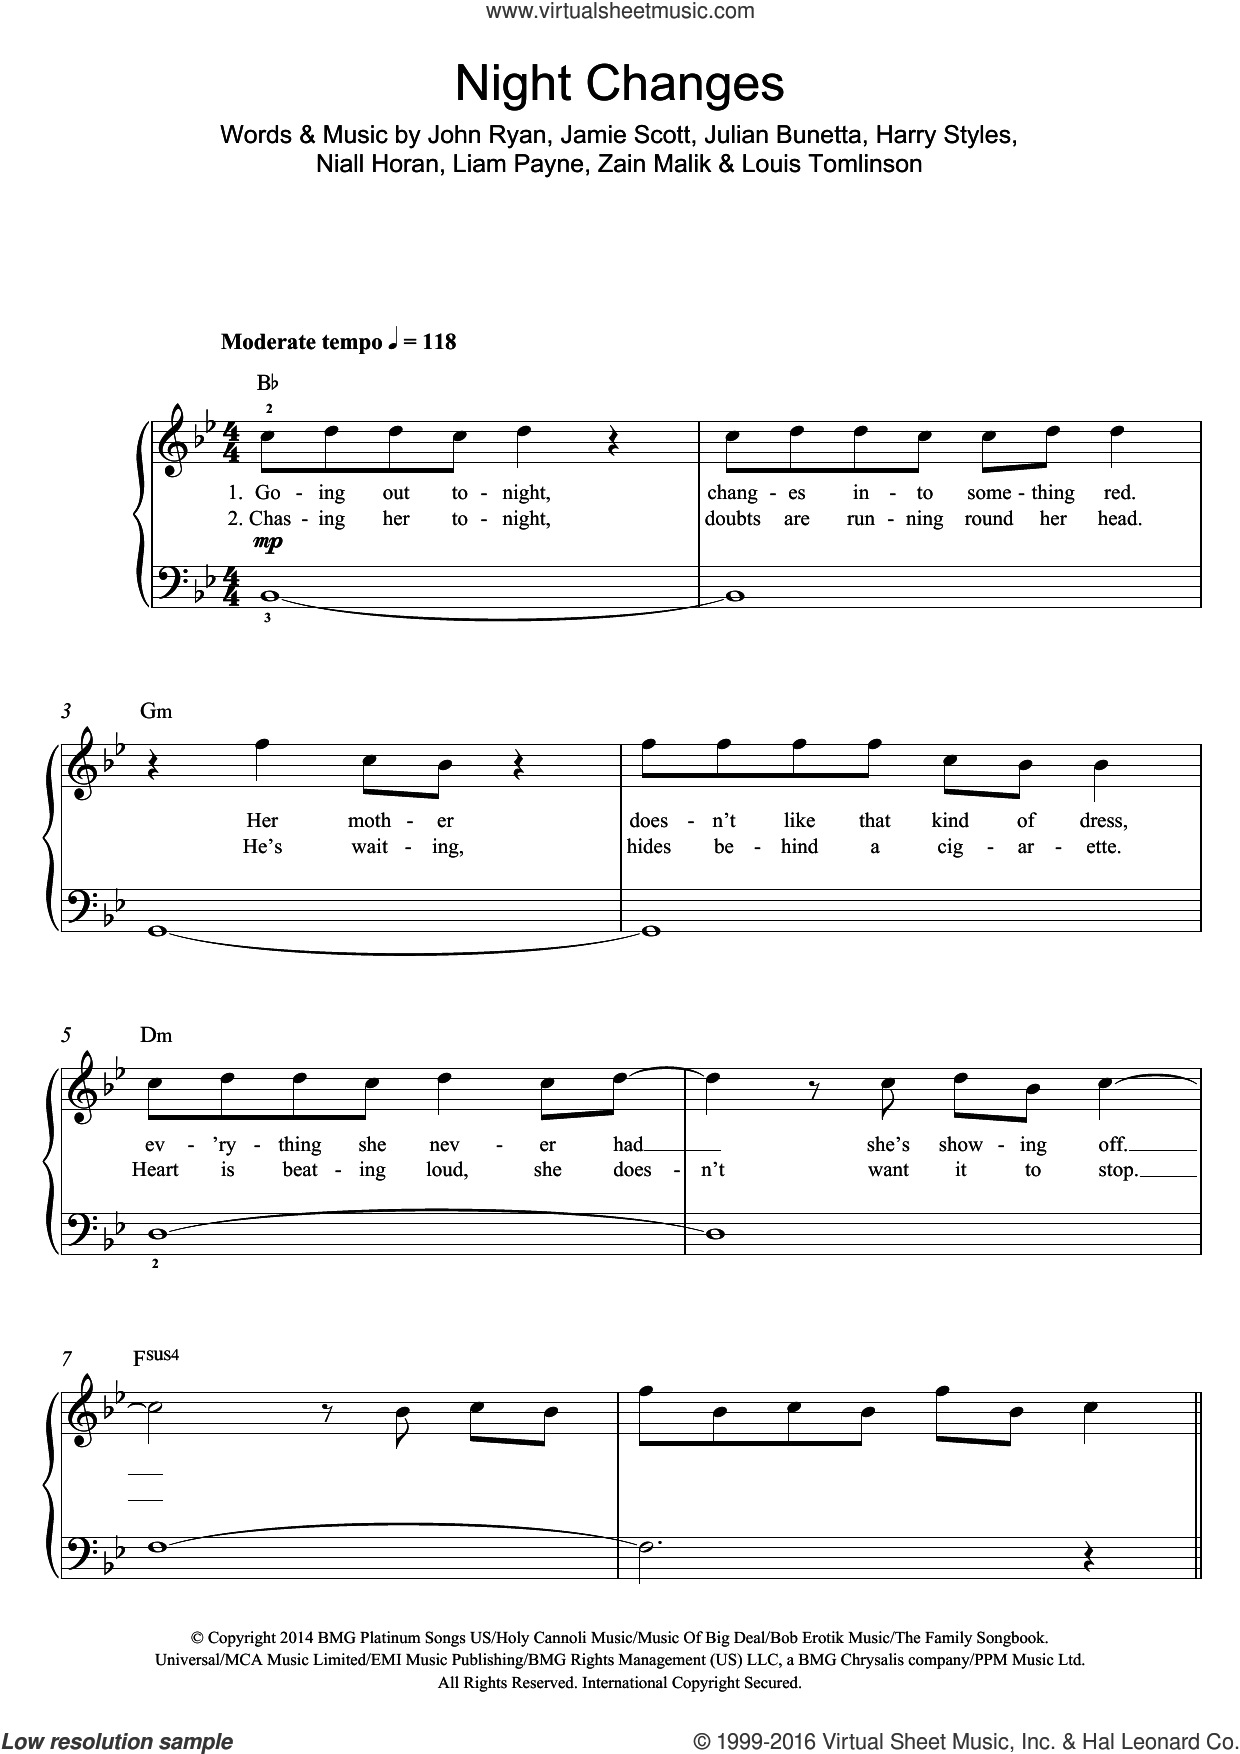 Night Changes sheet music for piano solo by One Direction, Harry Styles, Jamie Scott, John Ryan, Julian Bunetta, Liam Payne, Louis Tomlinson, Niall Horan and Zain Malik, easy skill level